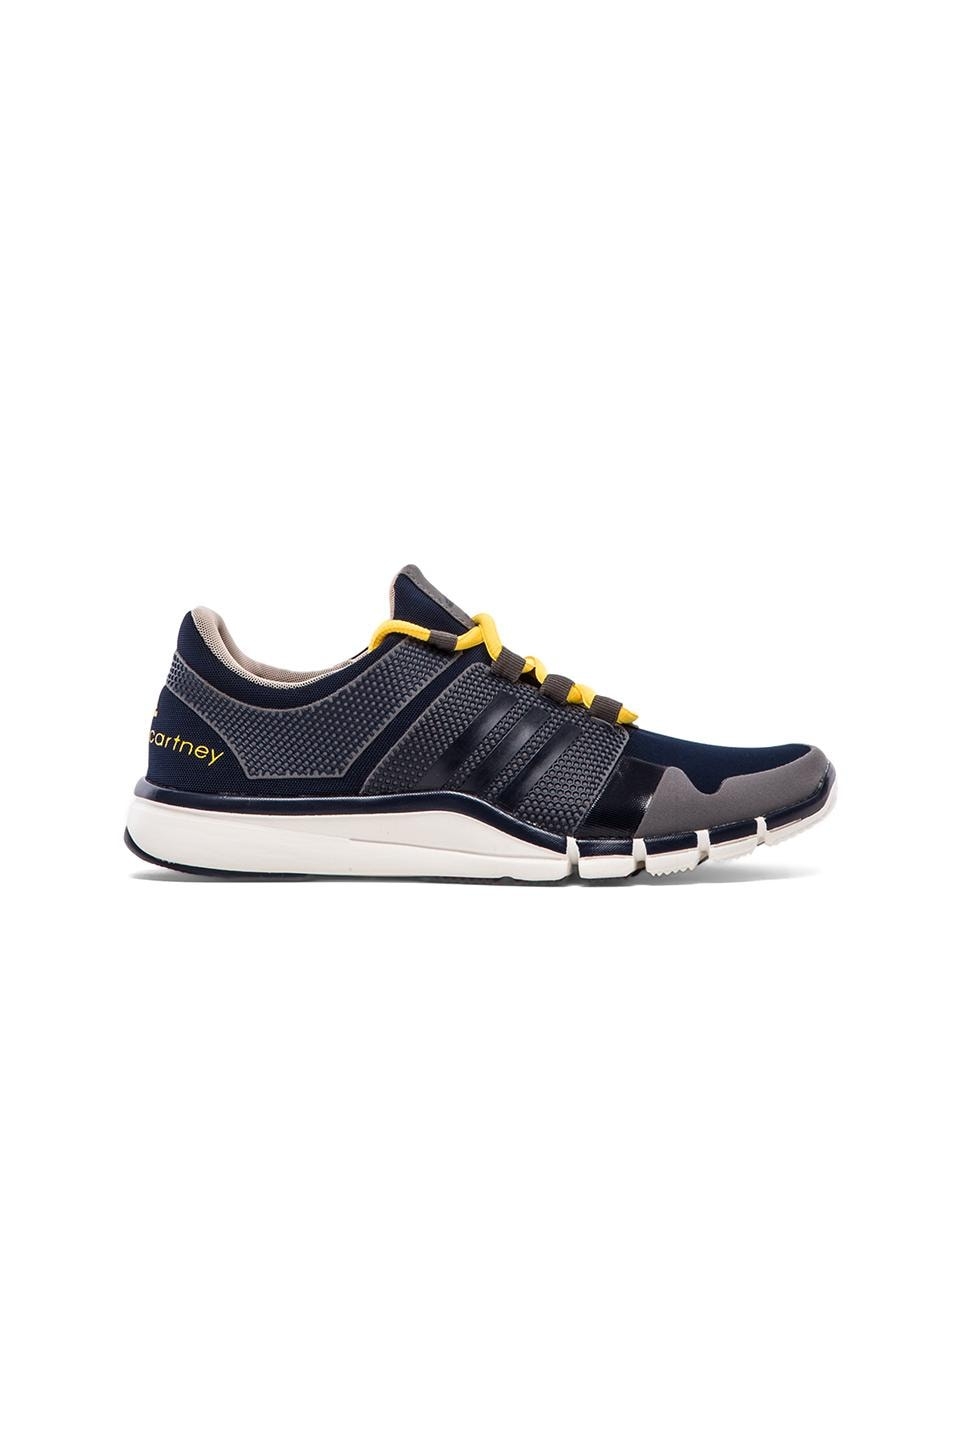 adidas by Stella McCartney Sequel Athletic Shoe in Grey & Indigo & Yellow